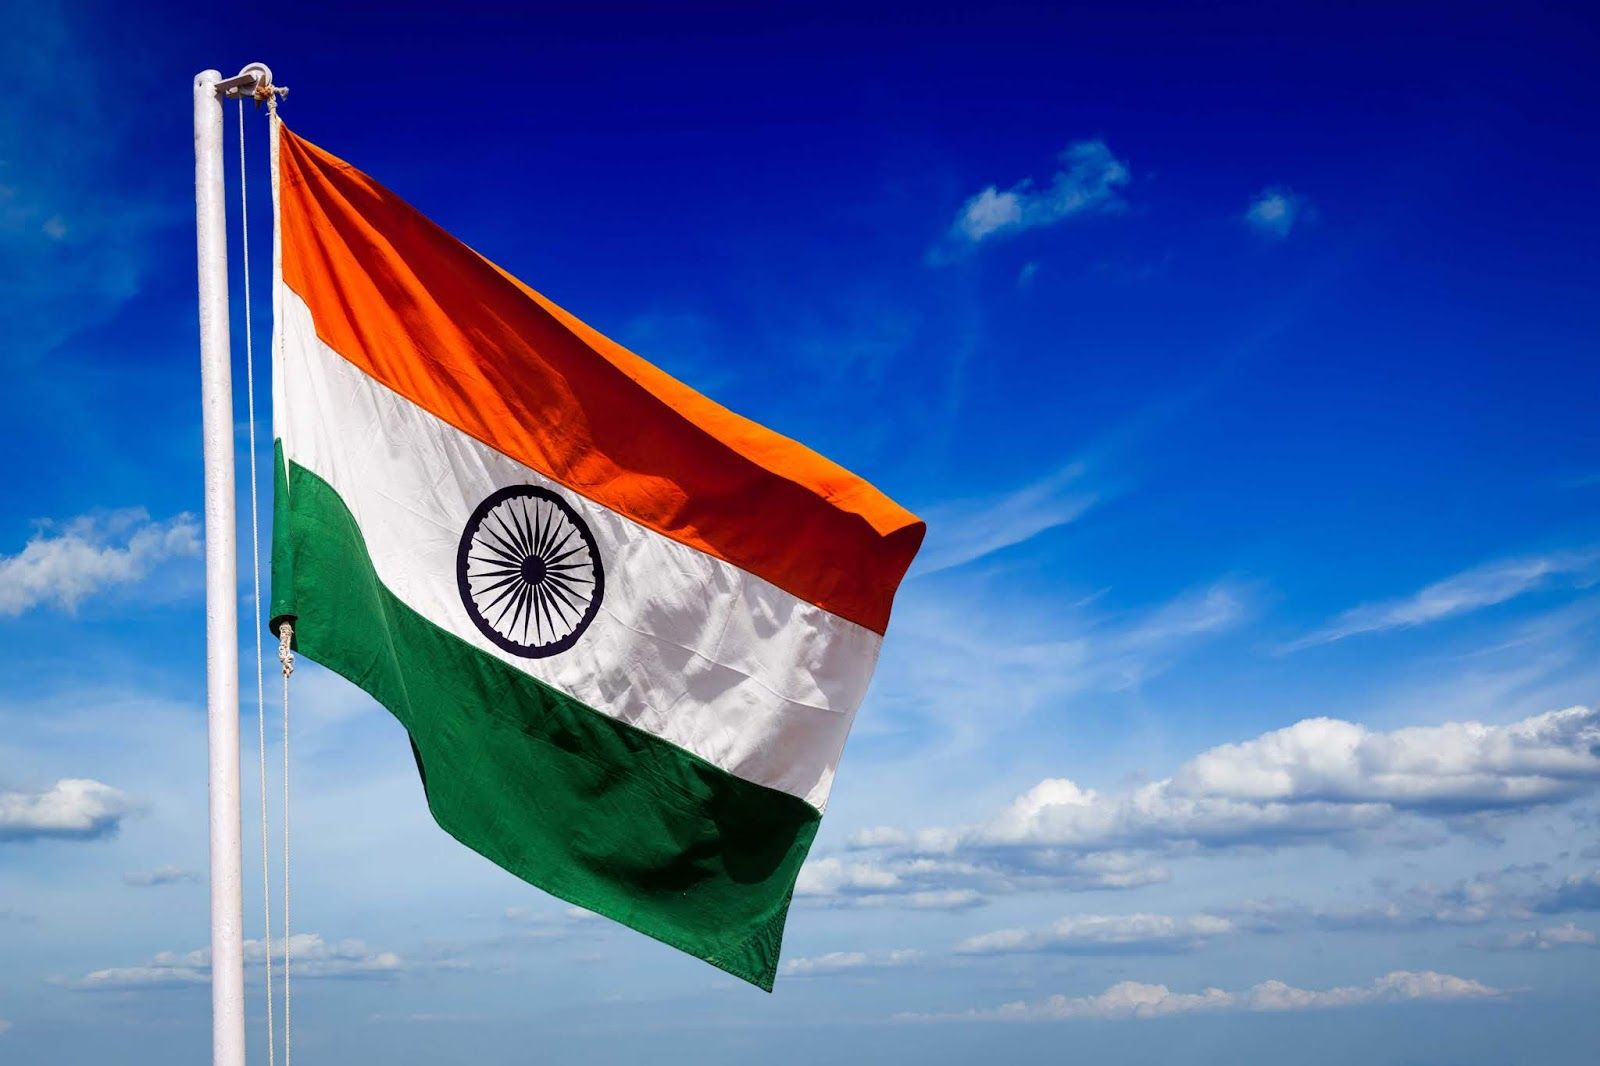 Indian Flag 4k Wallpaper: Happy Independence Day Images 2018: Indian Flag Wallpapers